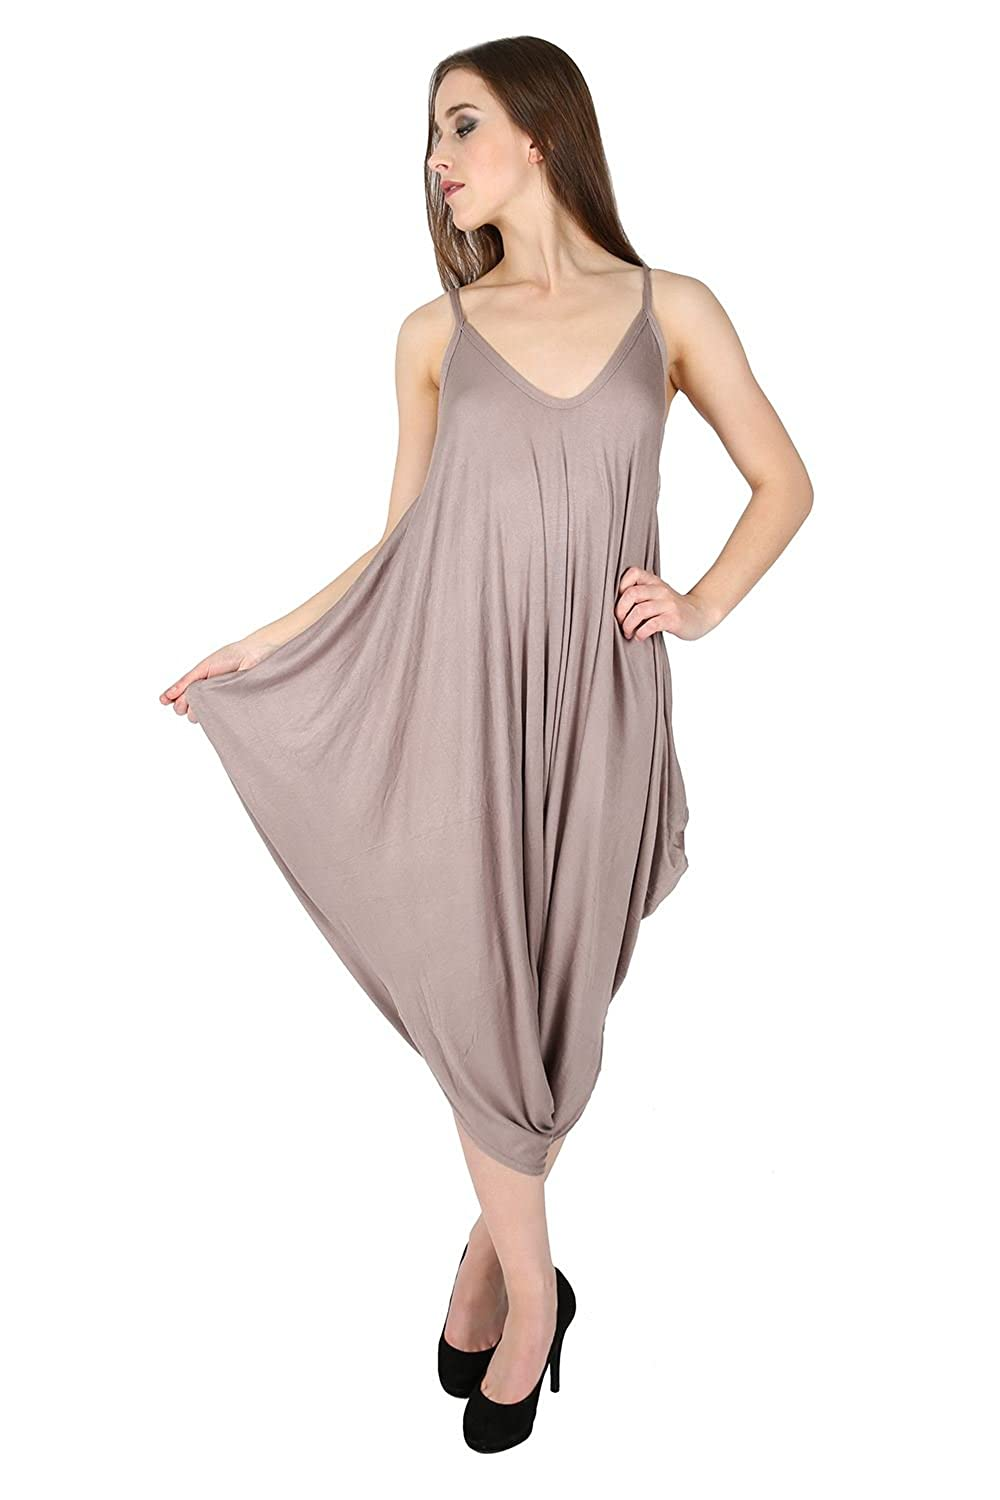 a153eb96e9 Oops Outlet Women s Thin Strap Lagenlook Romper Baggy Harem Jumpsuit  Playsuit  Amazon.ca  Clothing   Accessories